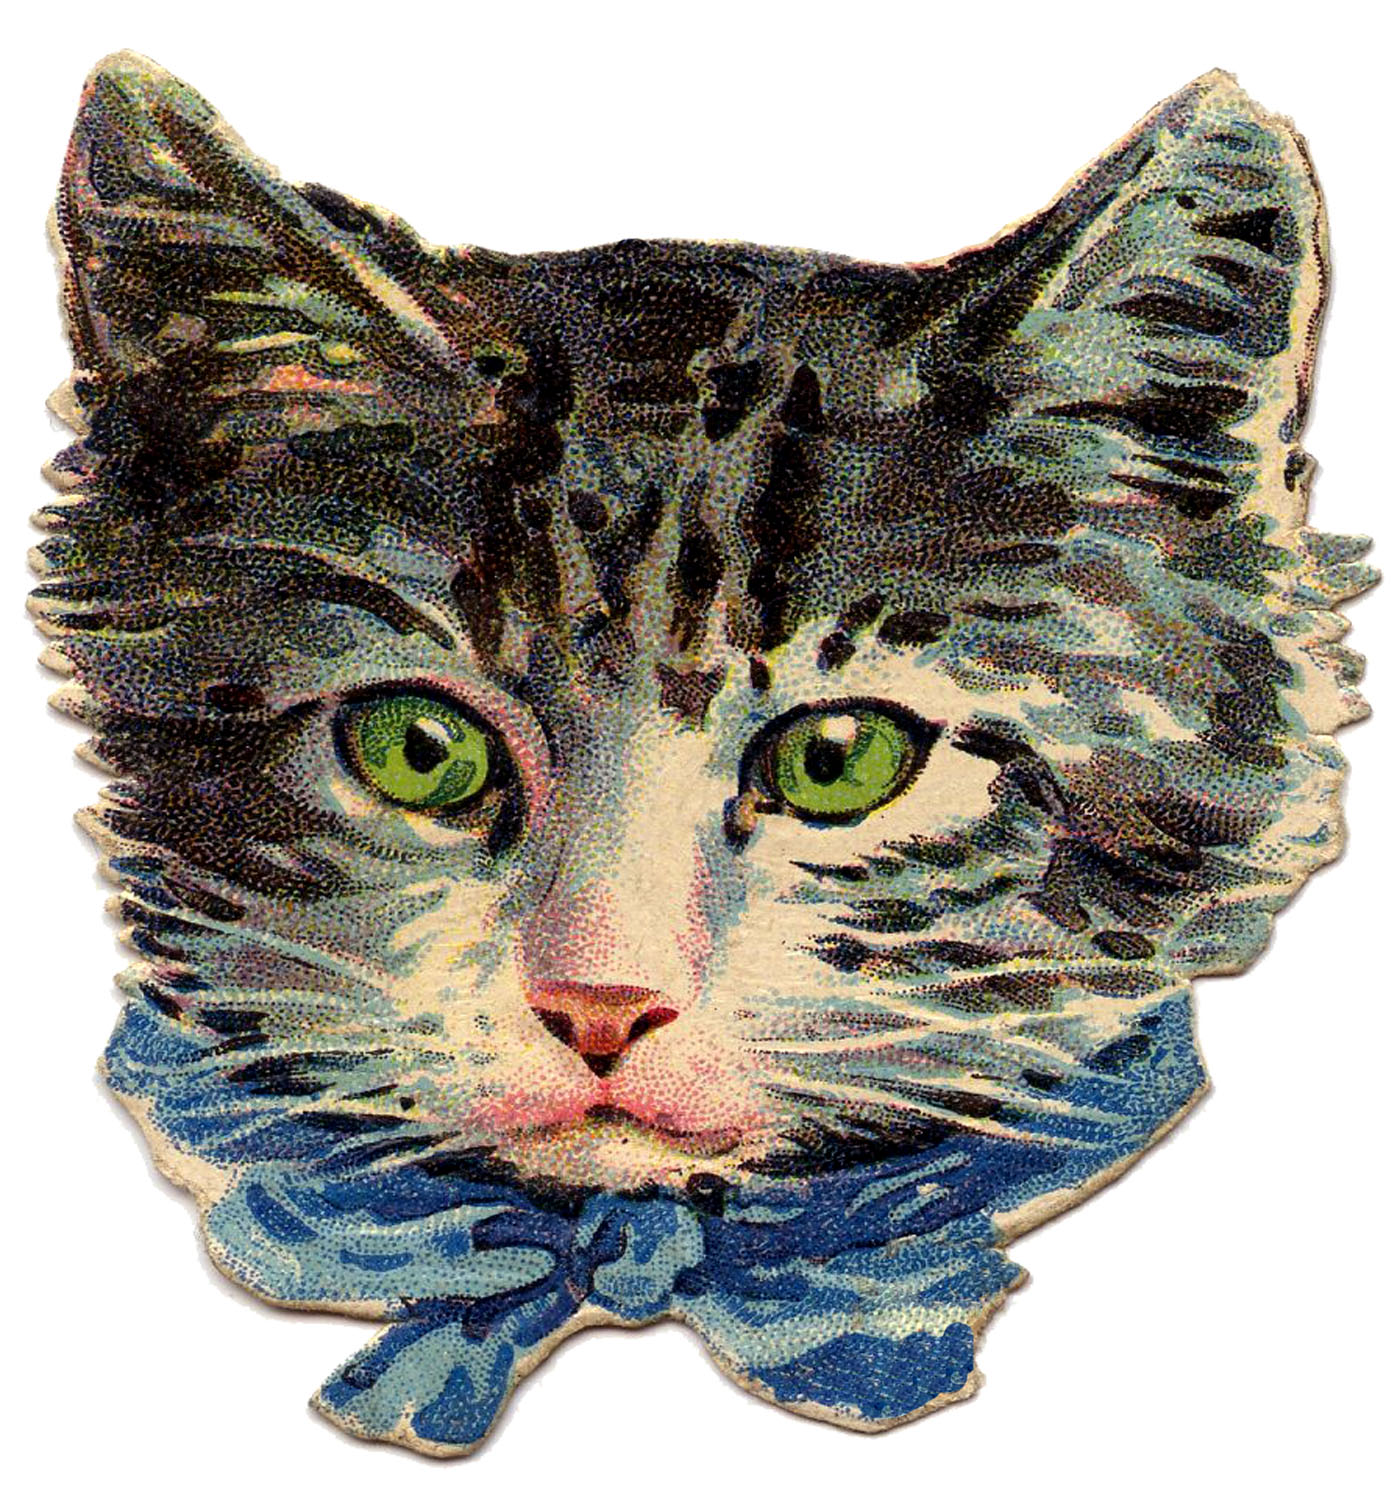 Classic Retro Illustration: Kitty Cat With Green Eyes